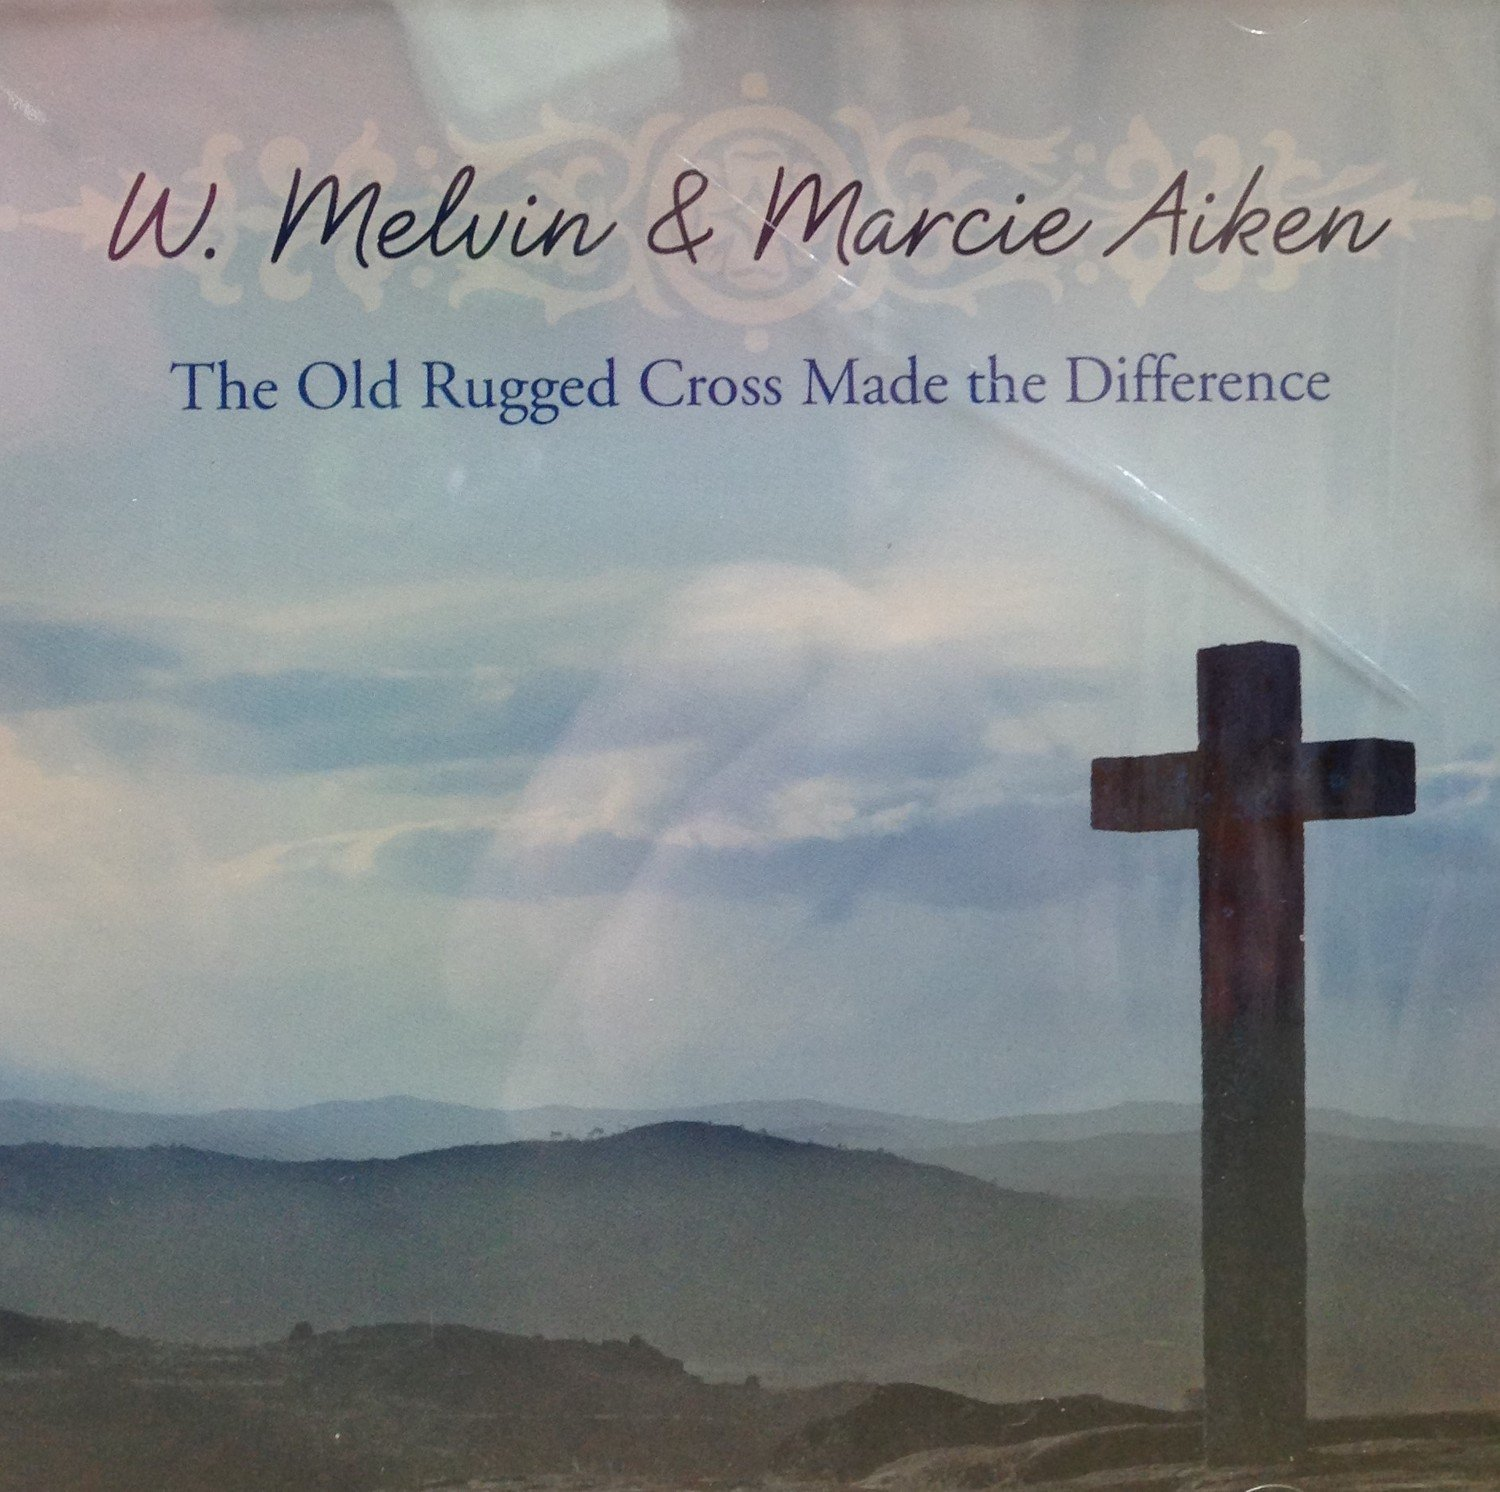 W. Melvin & Marcie Aiken:  The Old Rugged Cross Made the Difference